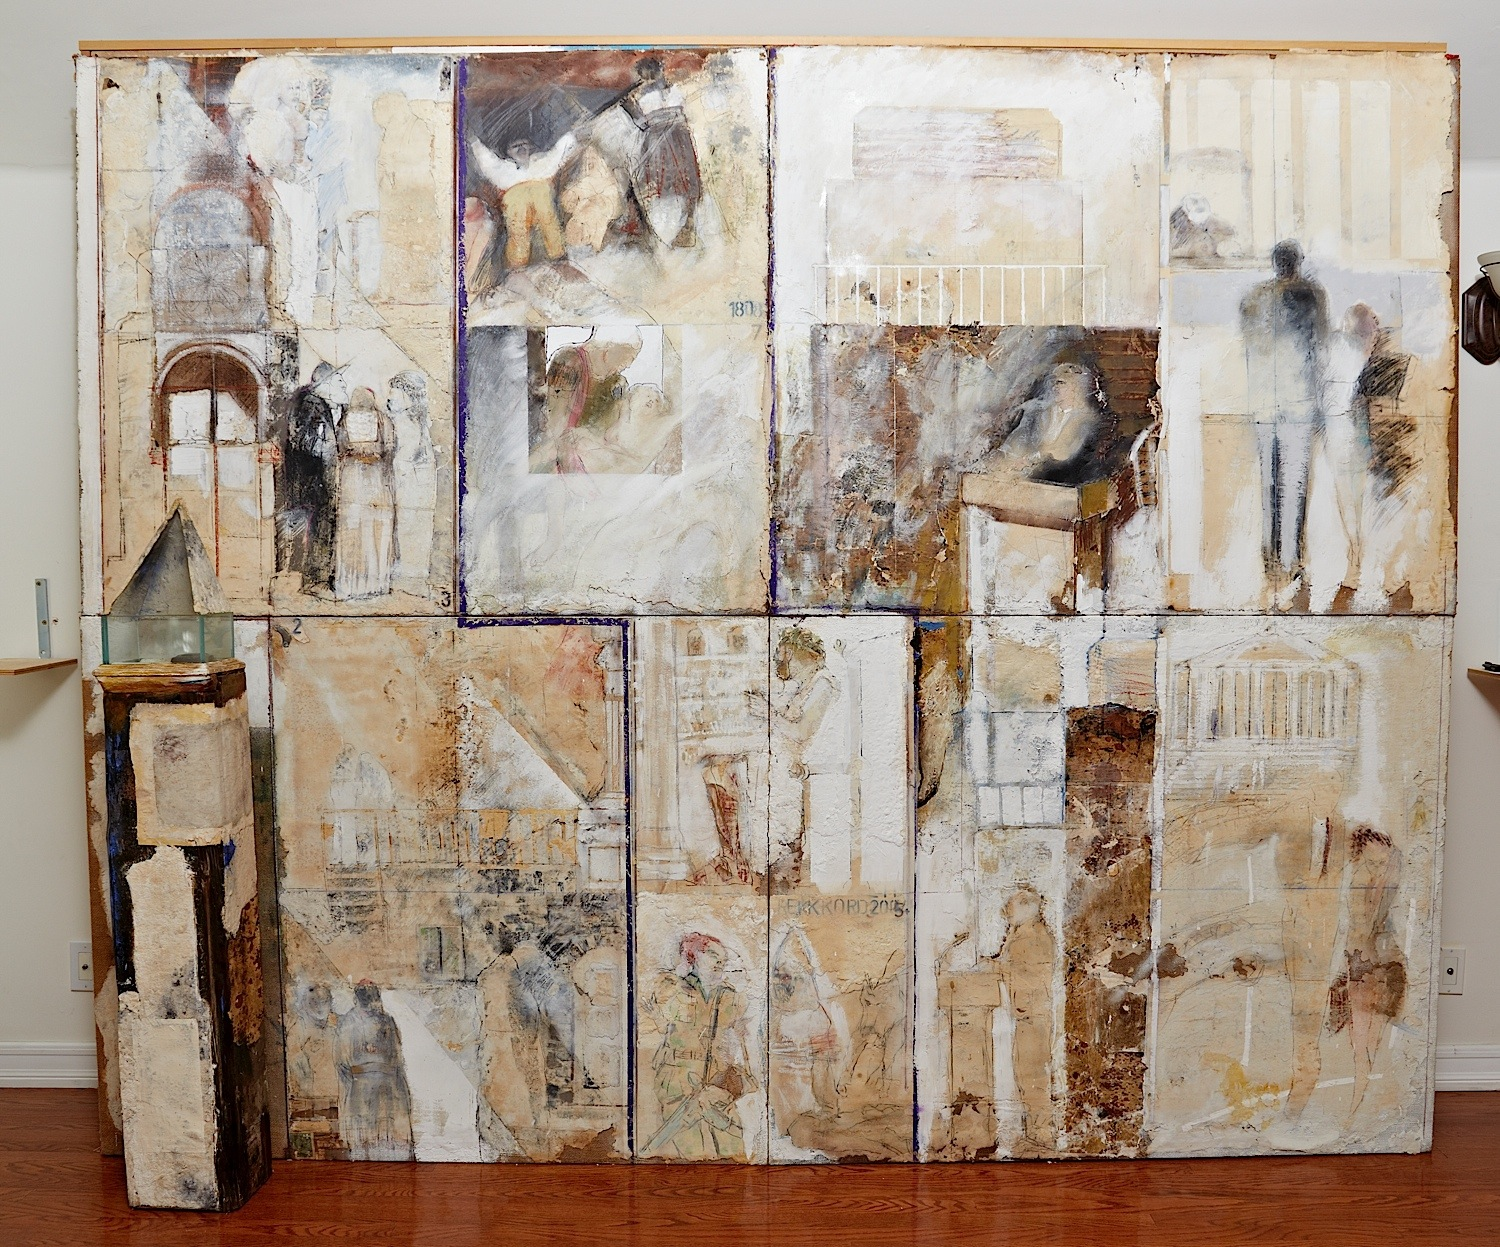 "Series White Dreams: ""Again and again"" (112"" x 91"") - Handmade cotton paper, canvas, oxides, and mixed medium"